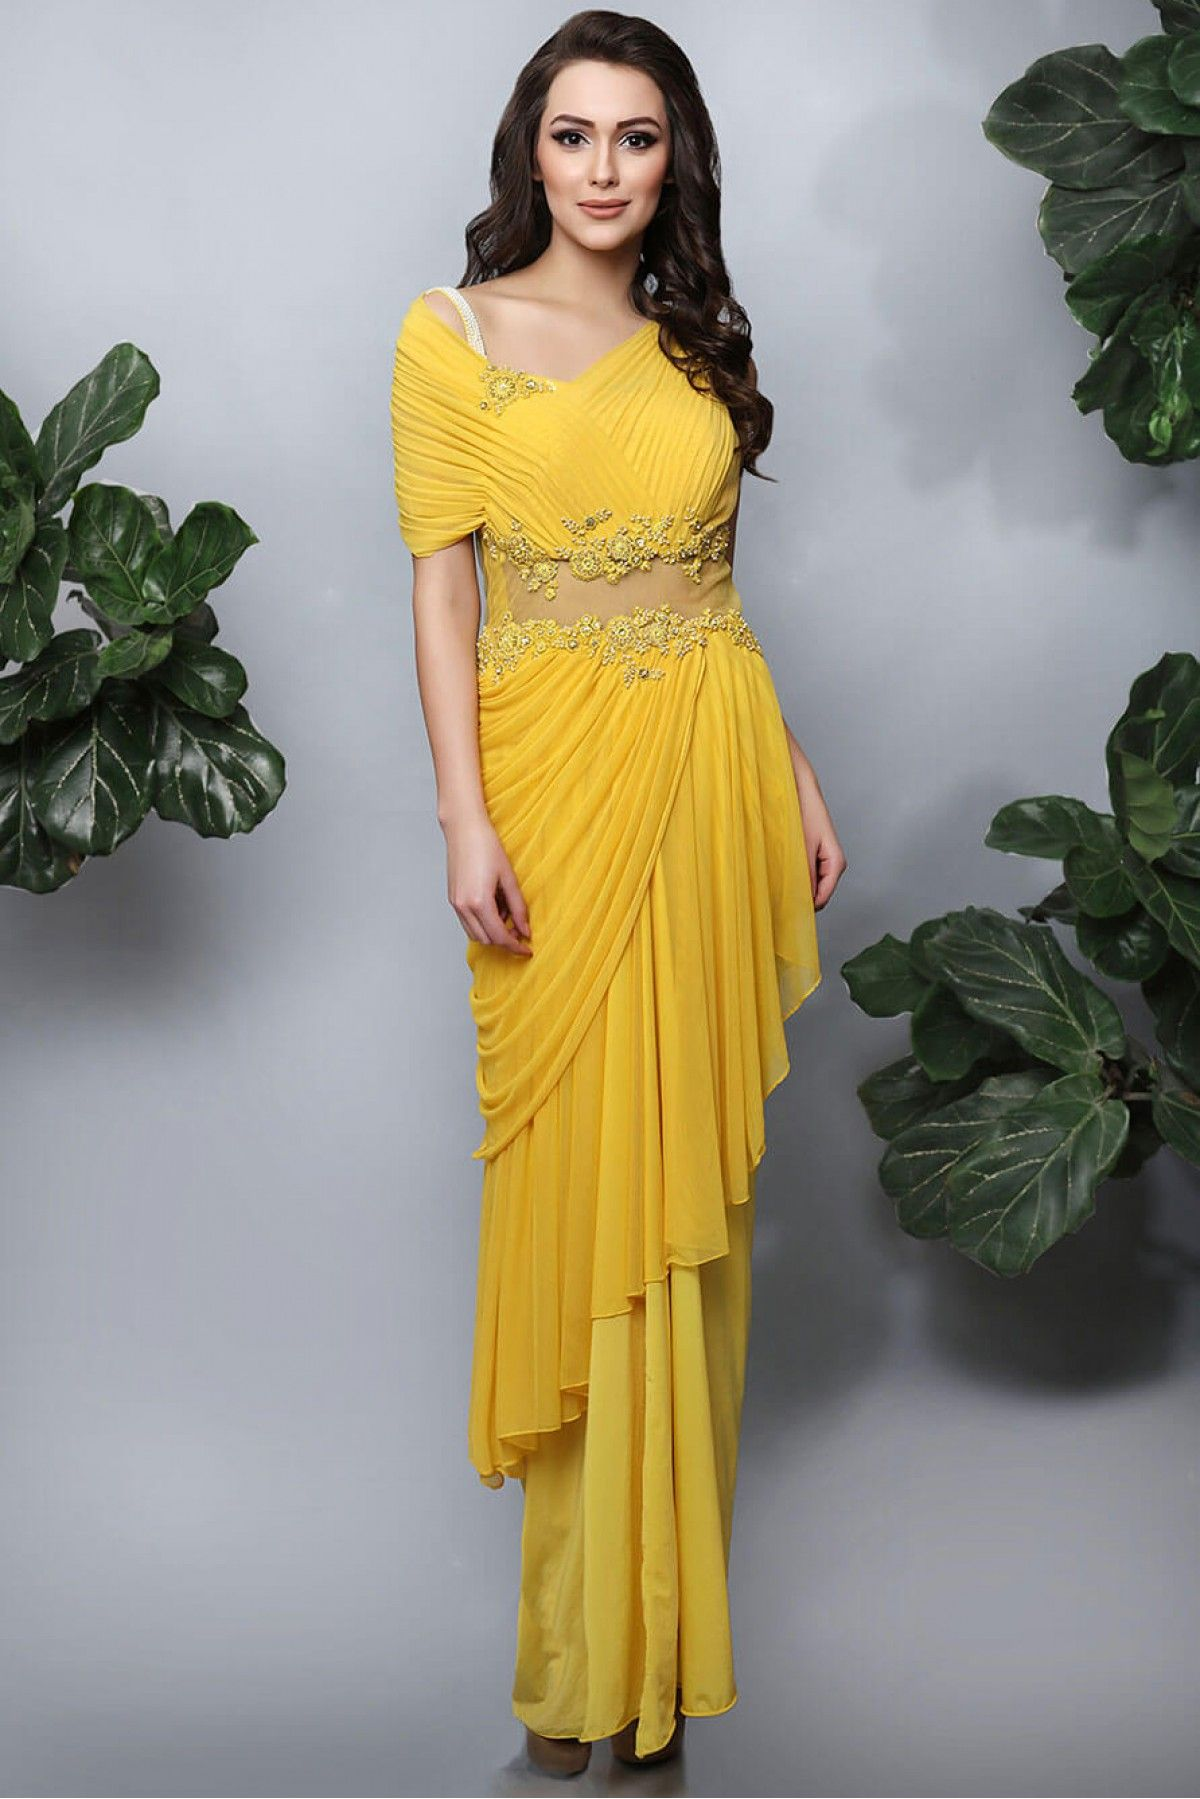 Buy Georgette Gown In Yellow Colour for women   ninecolours.com. Worldwide Free  Shipping Available! 293780ffe9ab